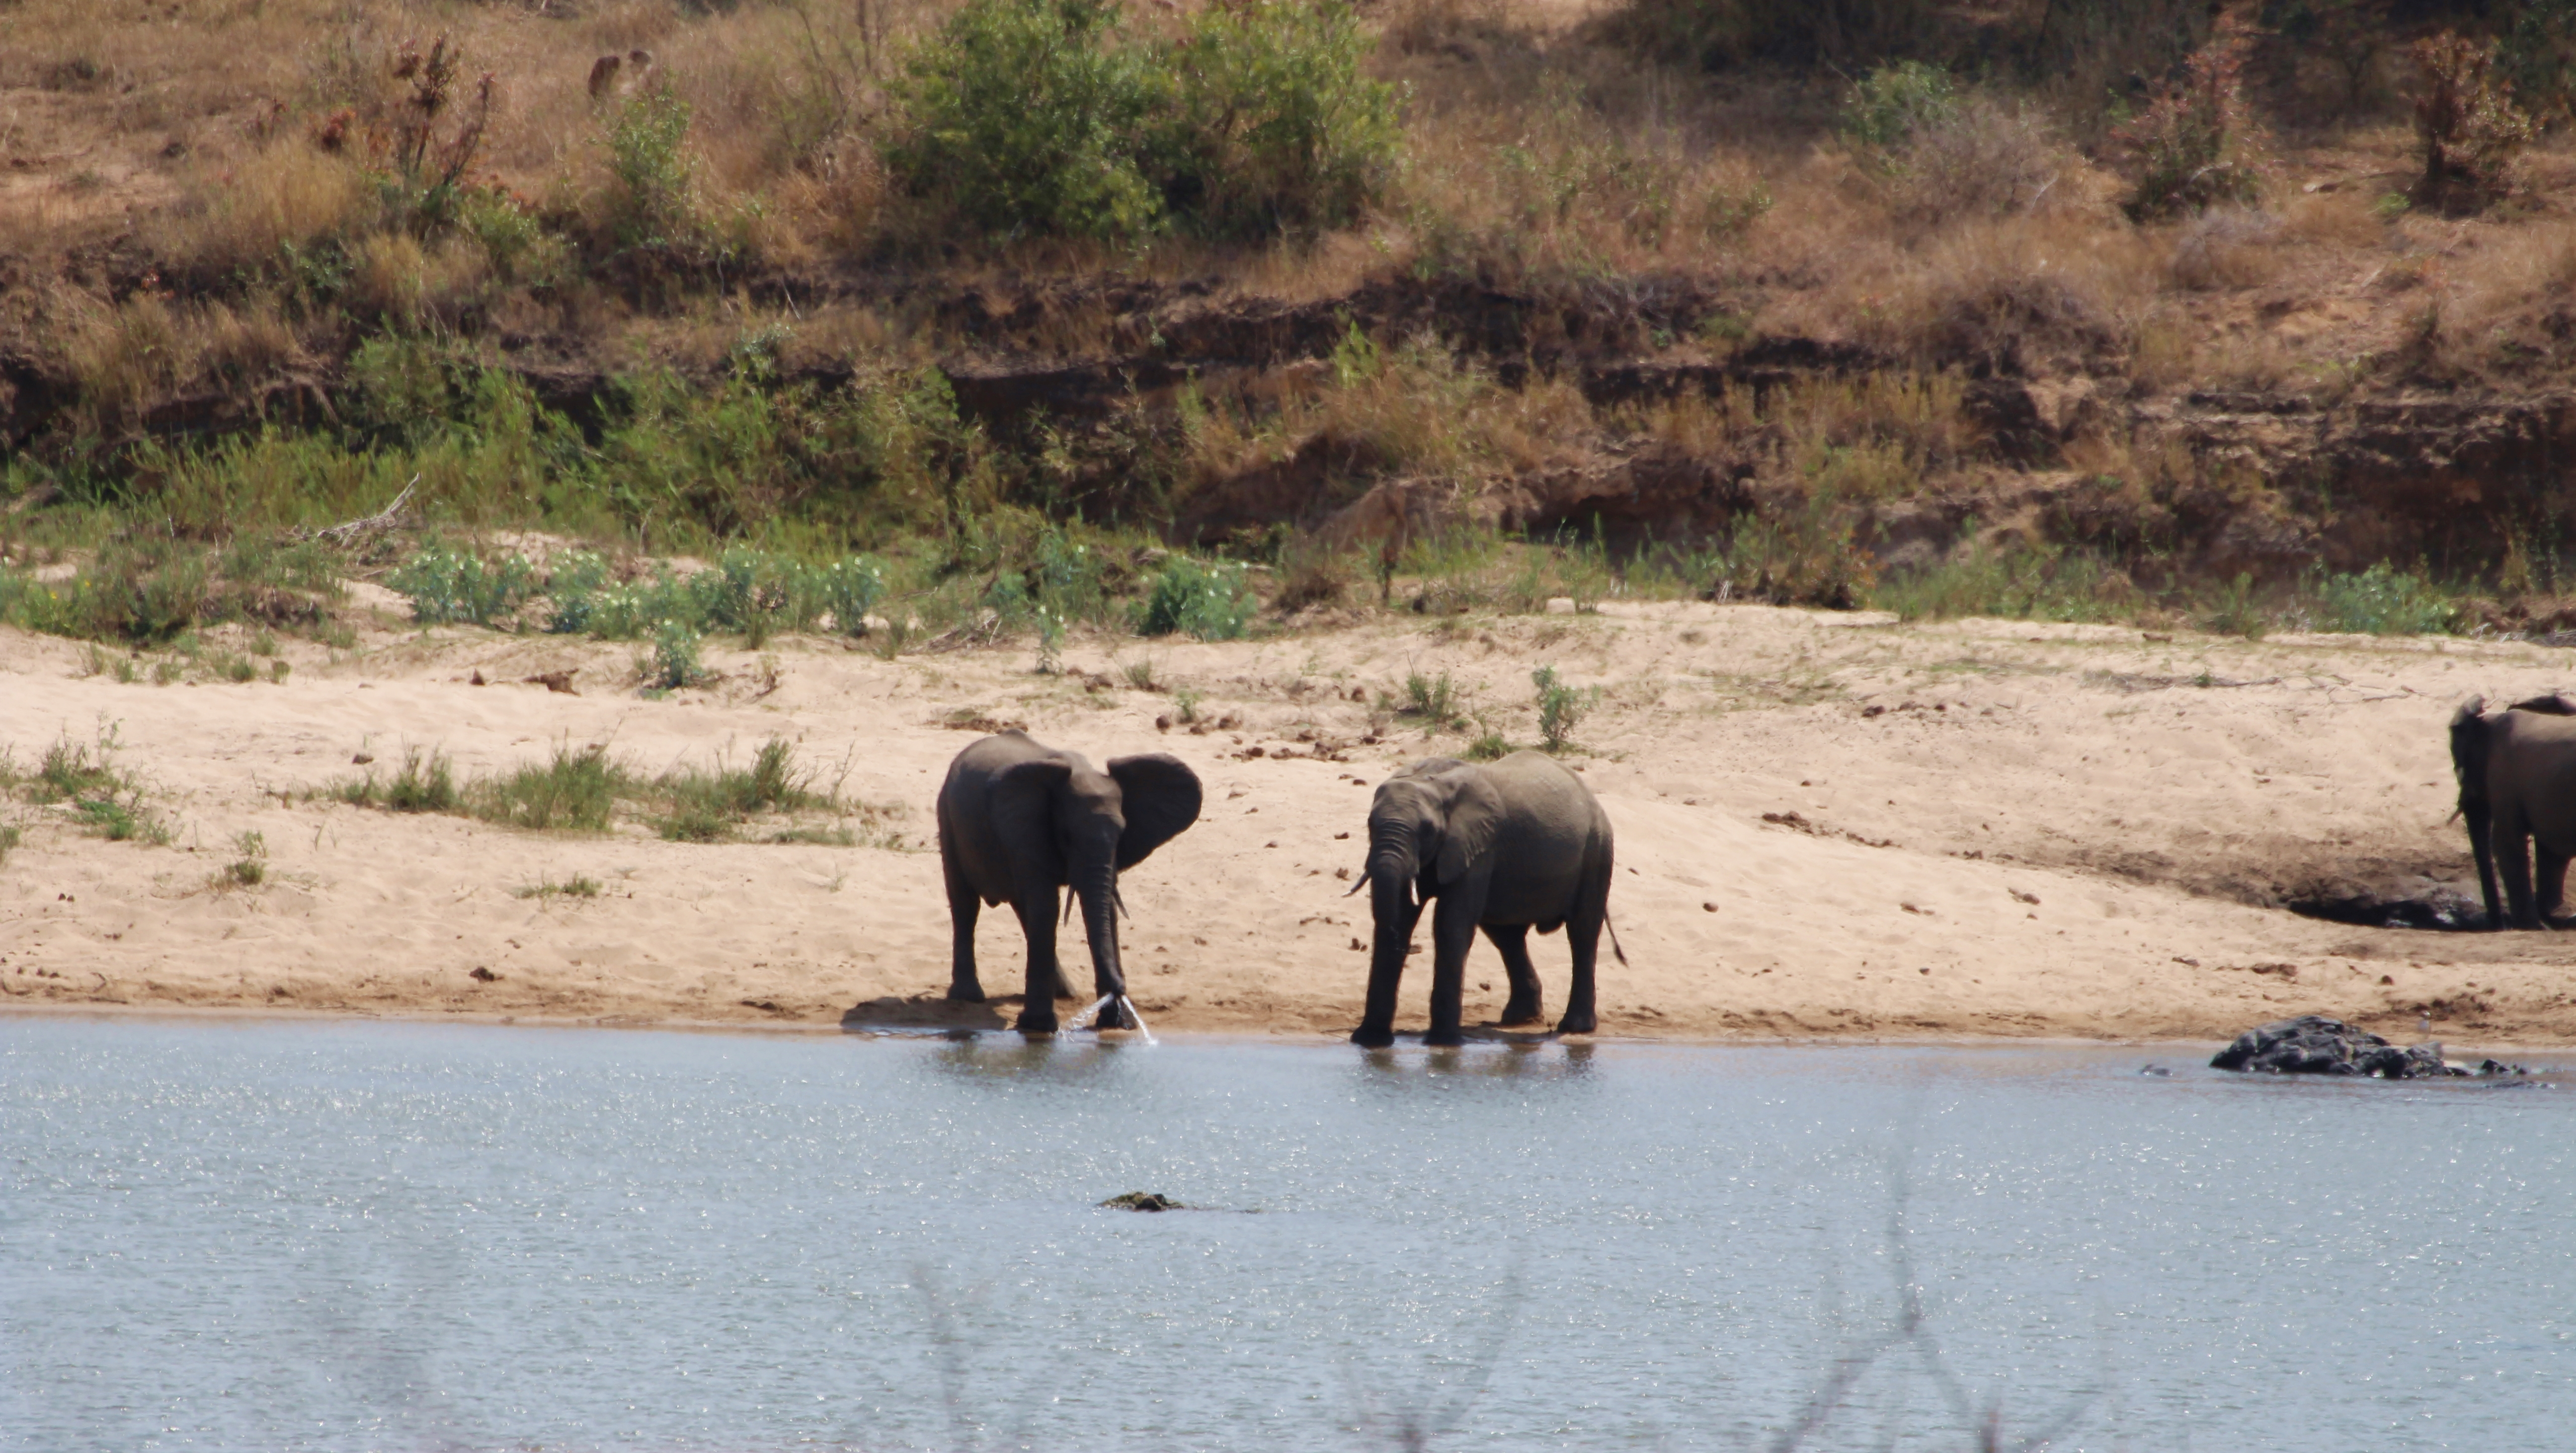 Kruger elephants playing in water